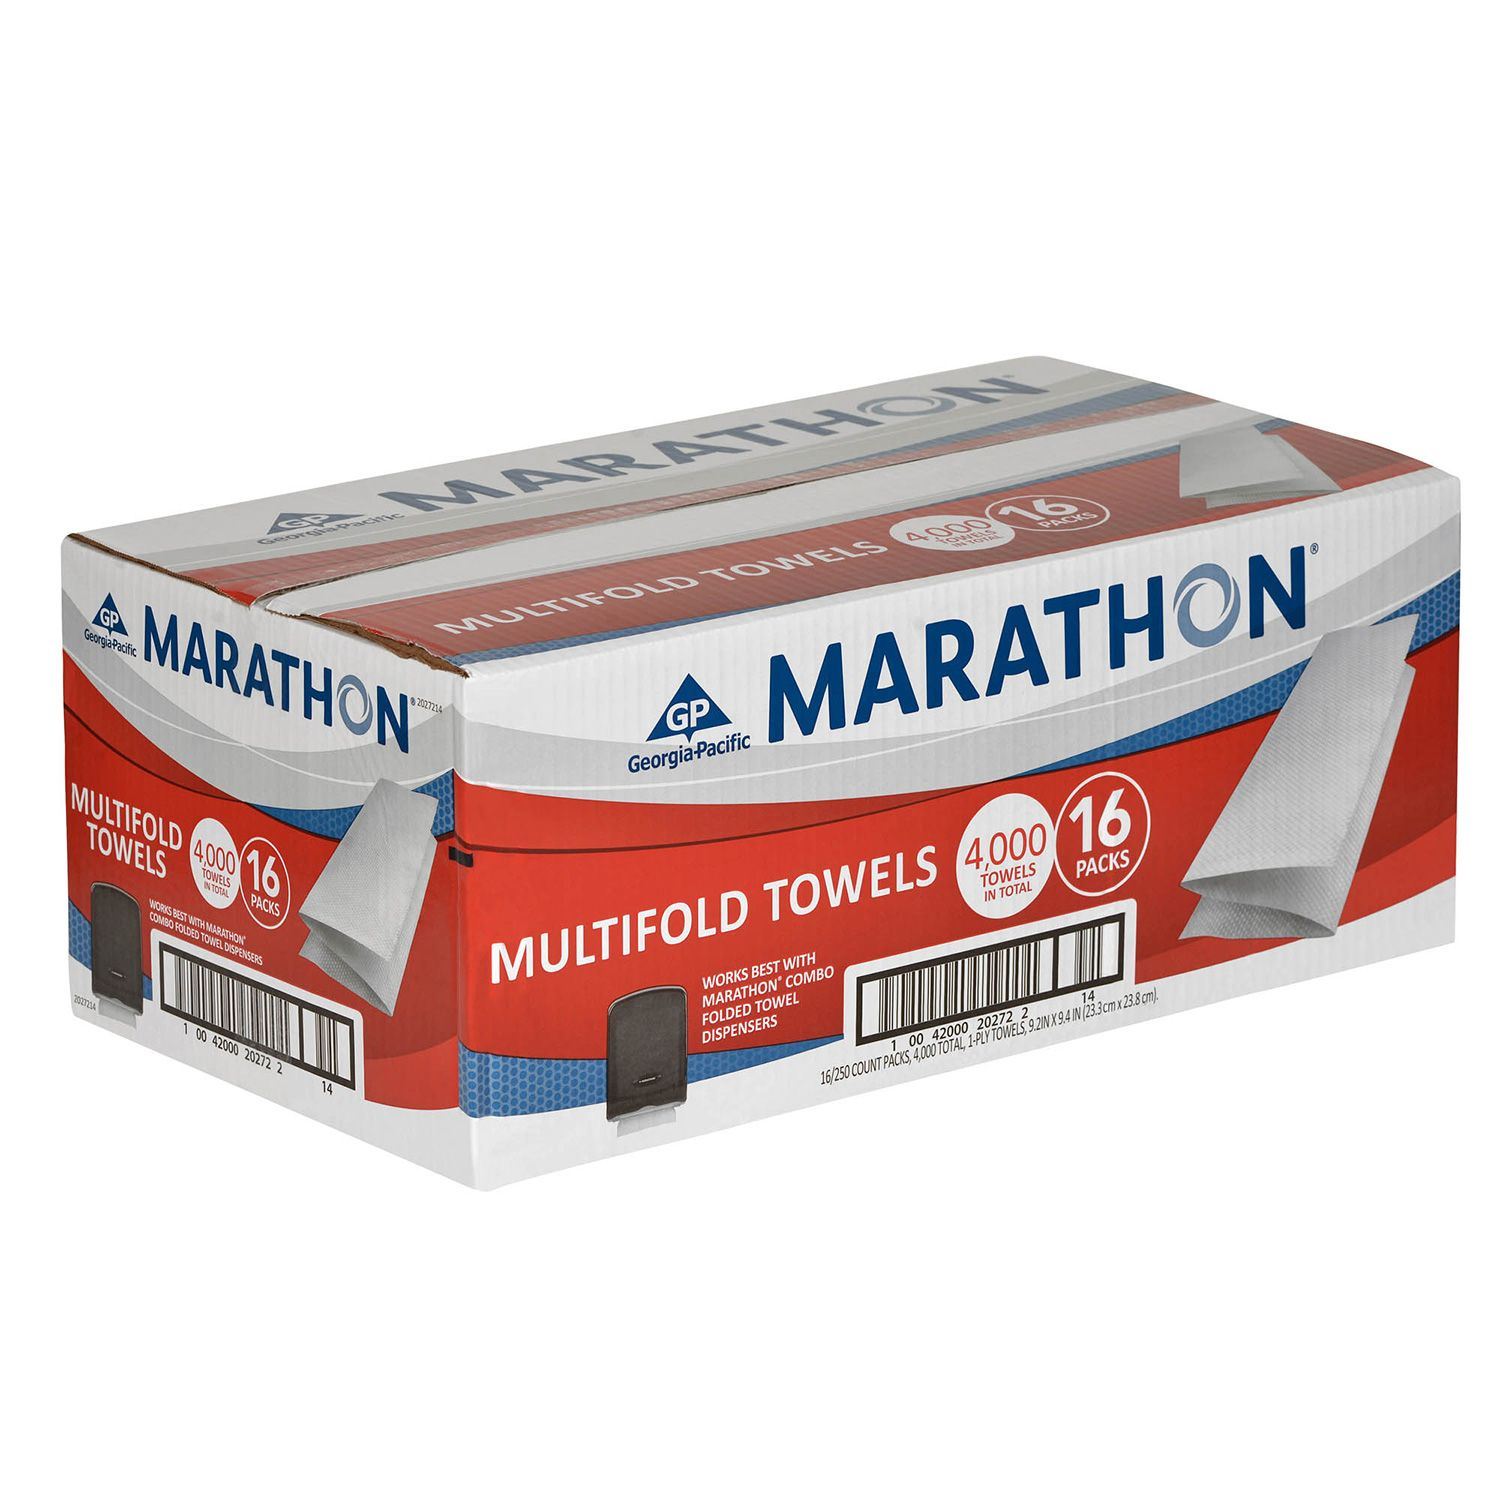 Marathon Multifold Paper Towels - 4,000 ct.